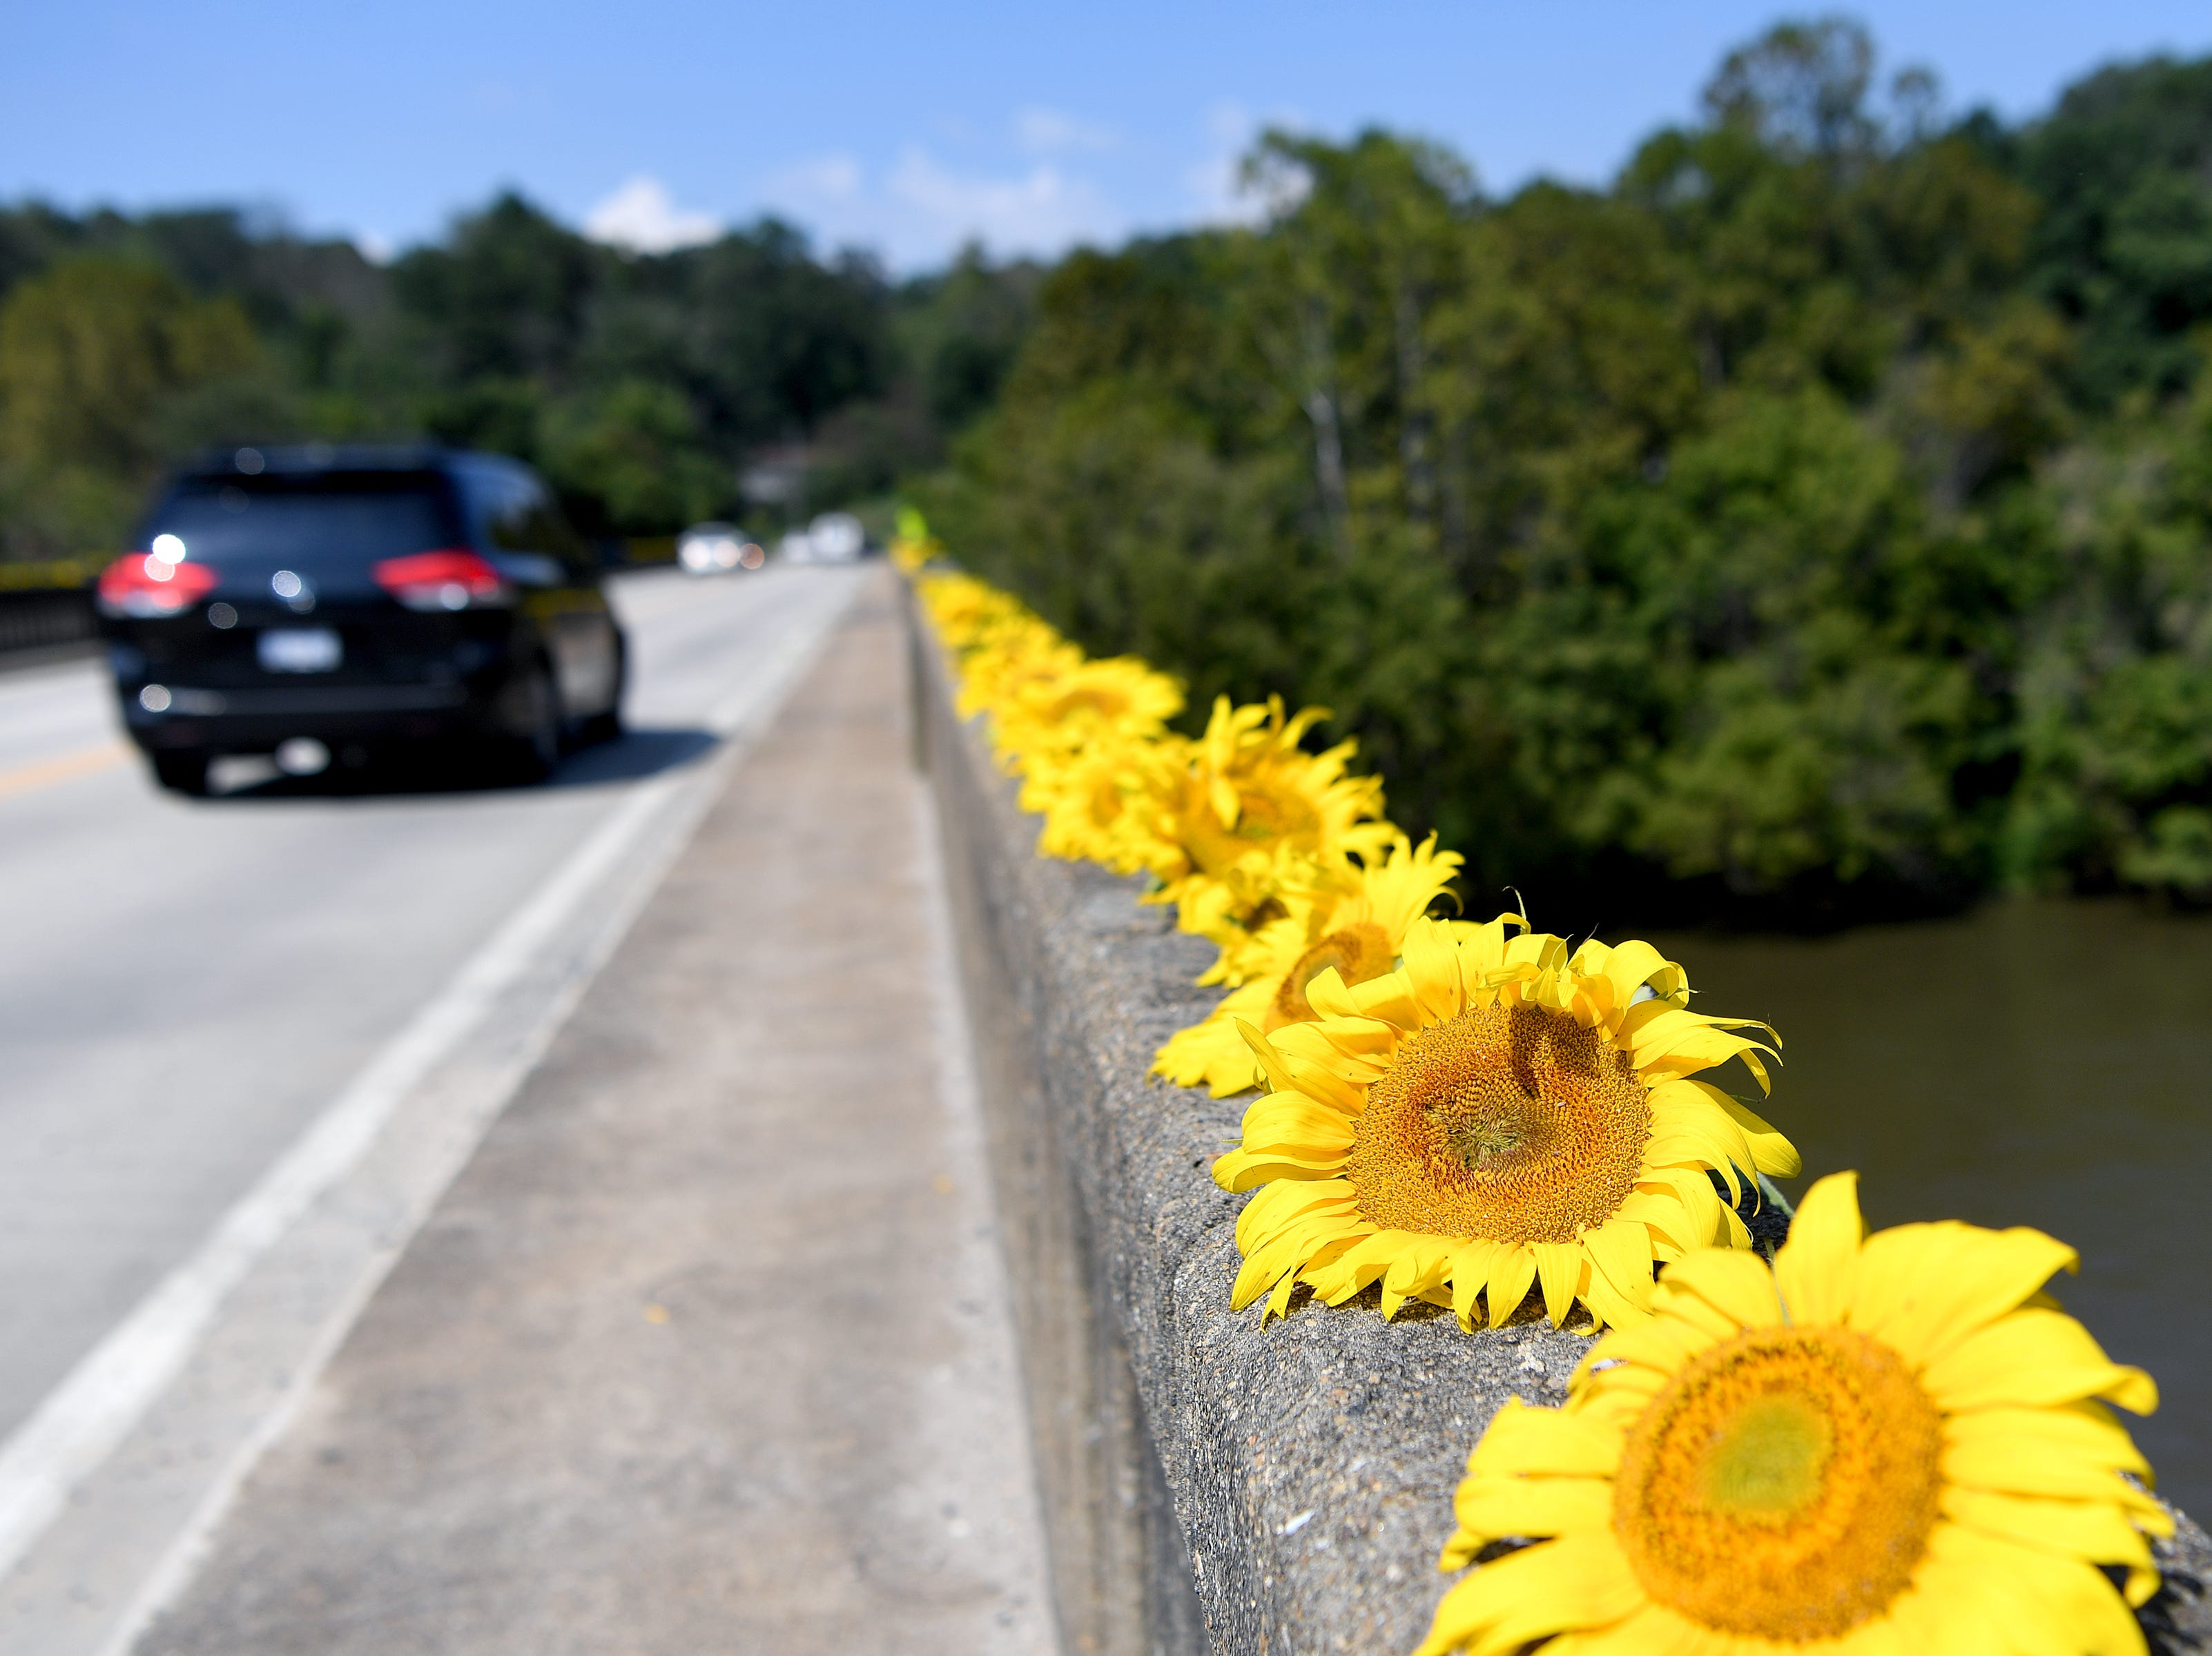 Hundreds of sunflowers decorated the sides of the Craggy Bridge in Woodfin on Sept. 19, 2018. The flowers came from the organic farm in the Olivette community and were placed to simply spread joy and community.